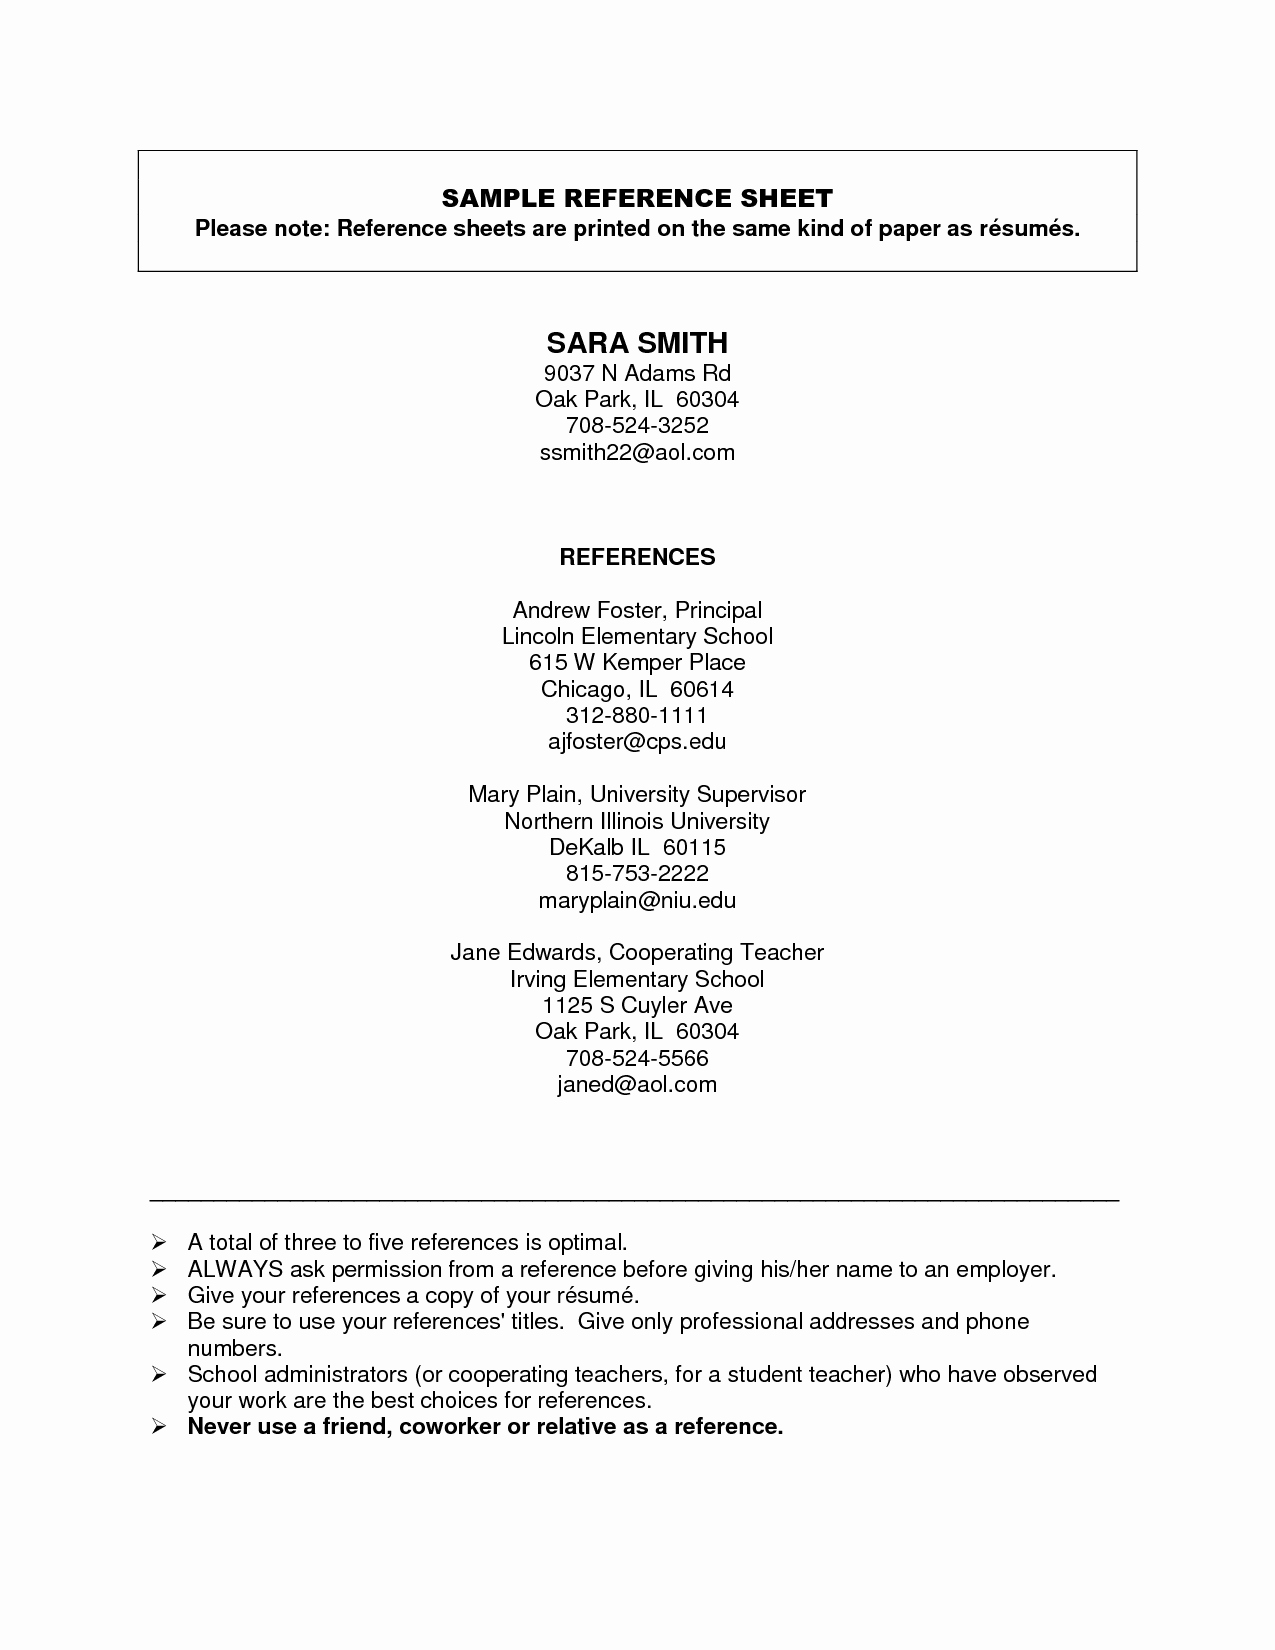 Reference Sheet for Resume Template Awesome References Sample How to Create A Reference List Sheet for